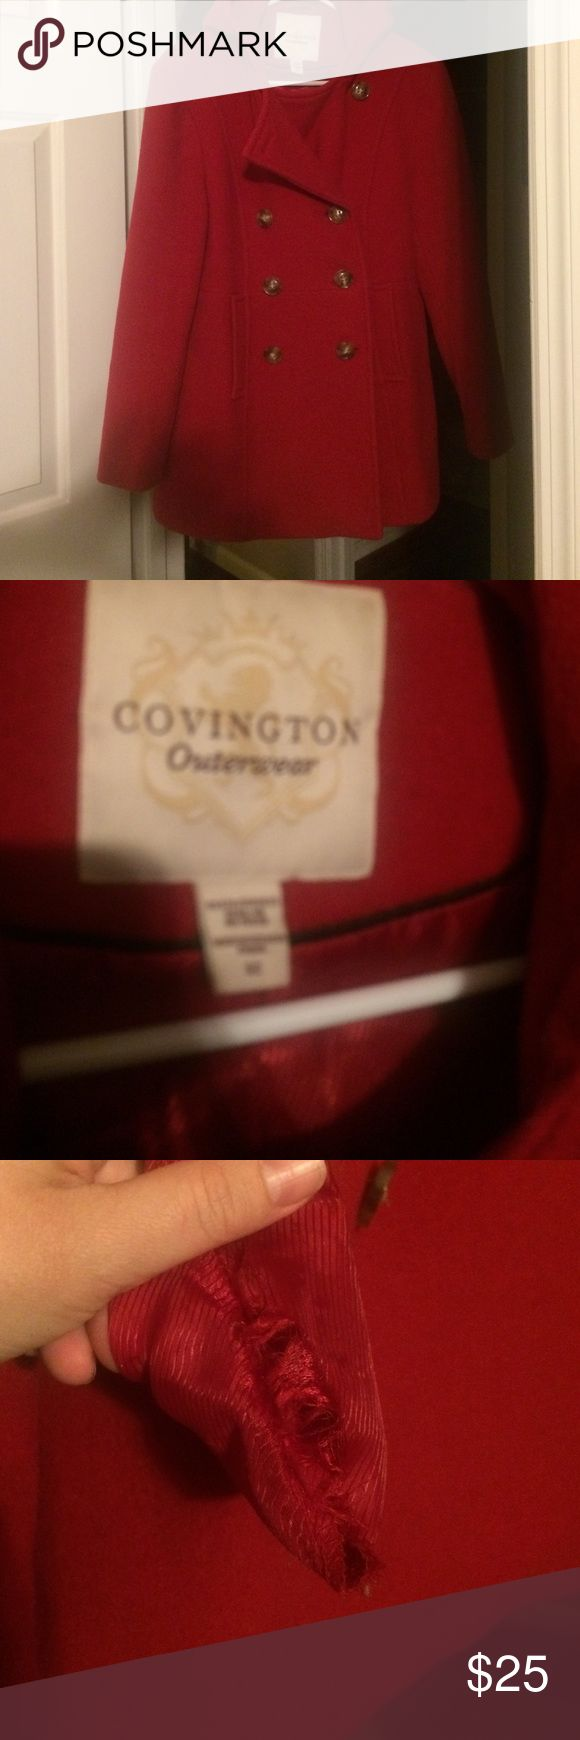 Red Pea Coat with Hood size small Great coat. Does need cleaning. Hole in the right pocket inside. All buttons are attached. Has a hood on it. Nice and warm. Red in color Covington Jackets & Coats Pea Coats